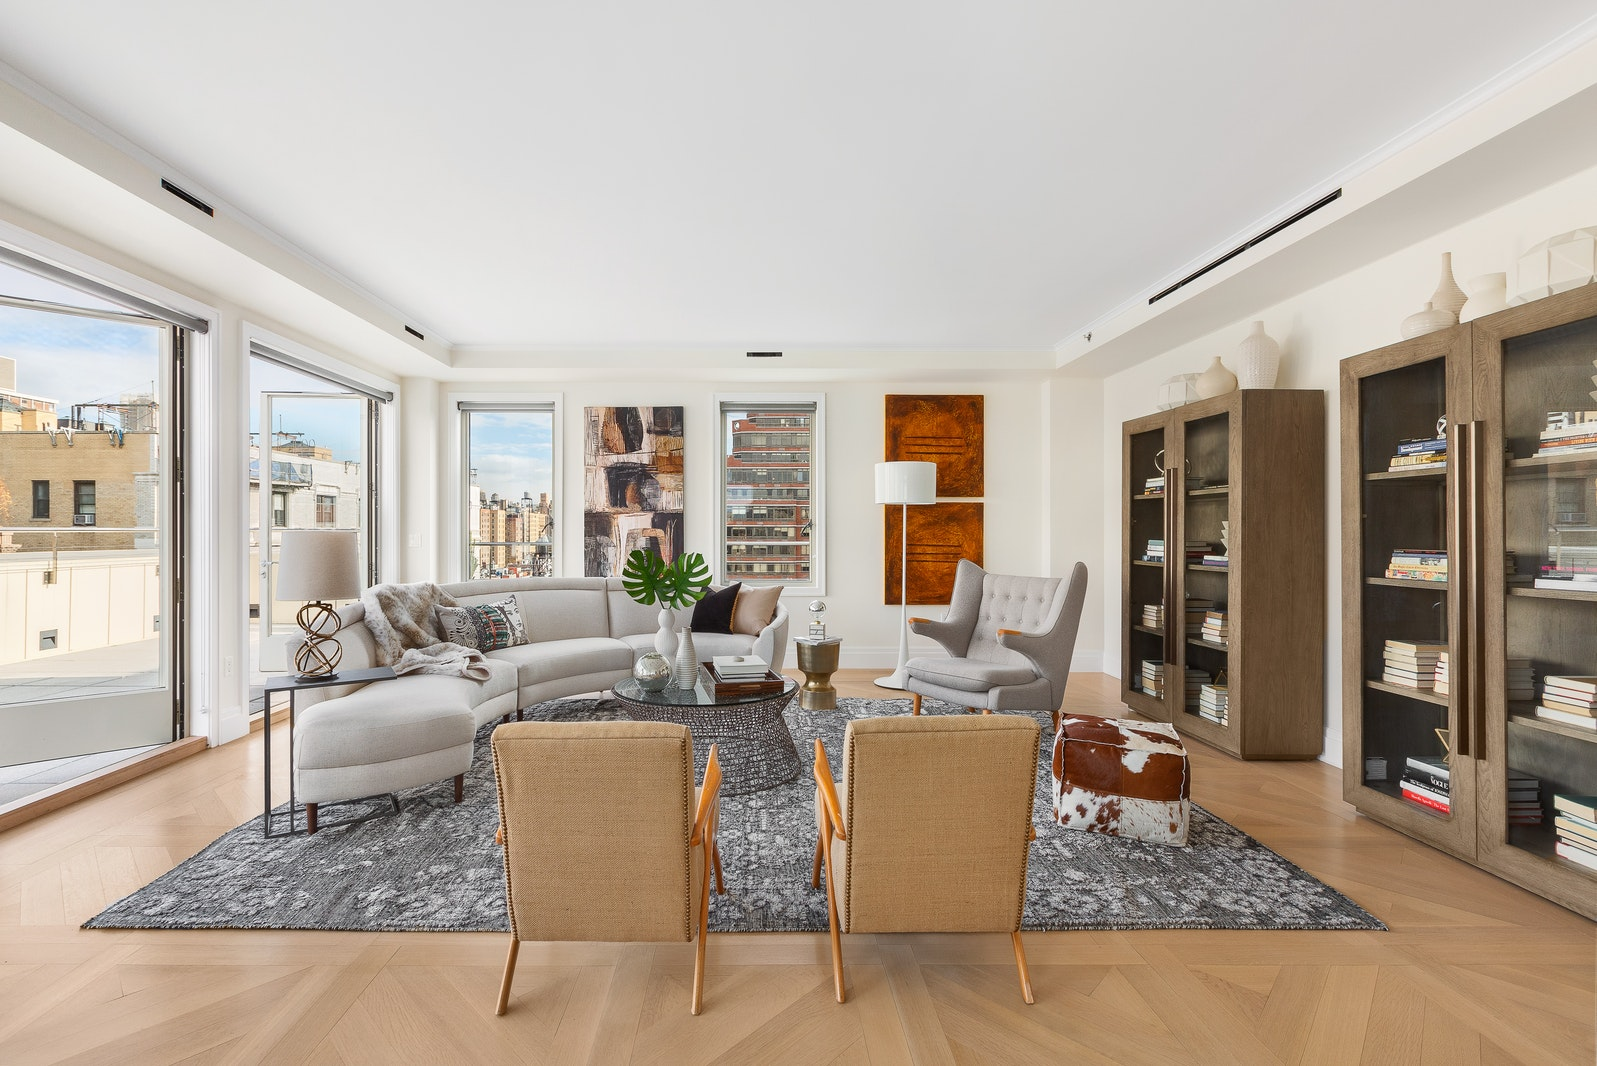 498 West End Avenue Ph, Upper West Side, NYC, 10024, $14,950,000, Property For Sale, Halstead Real Estate, Photo 5